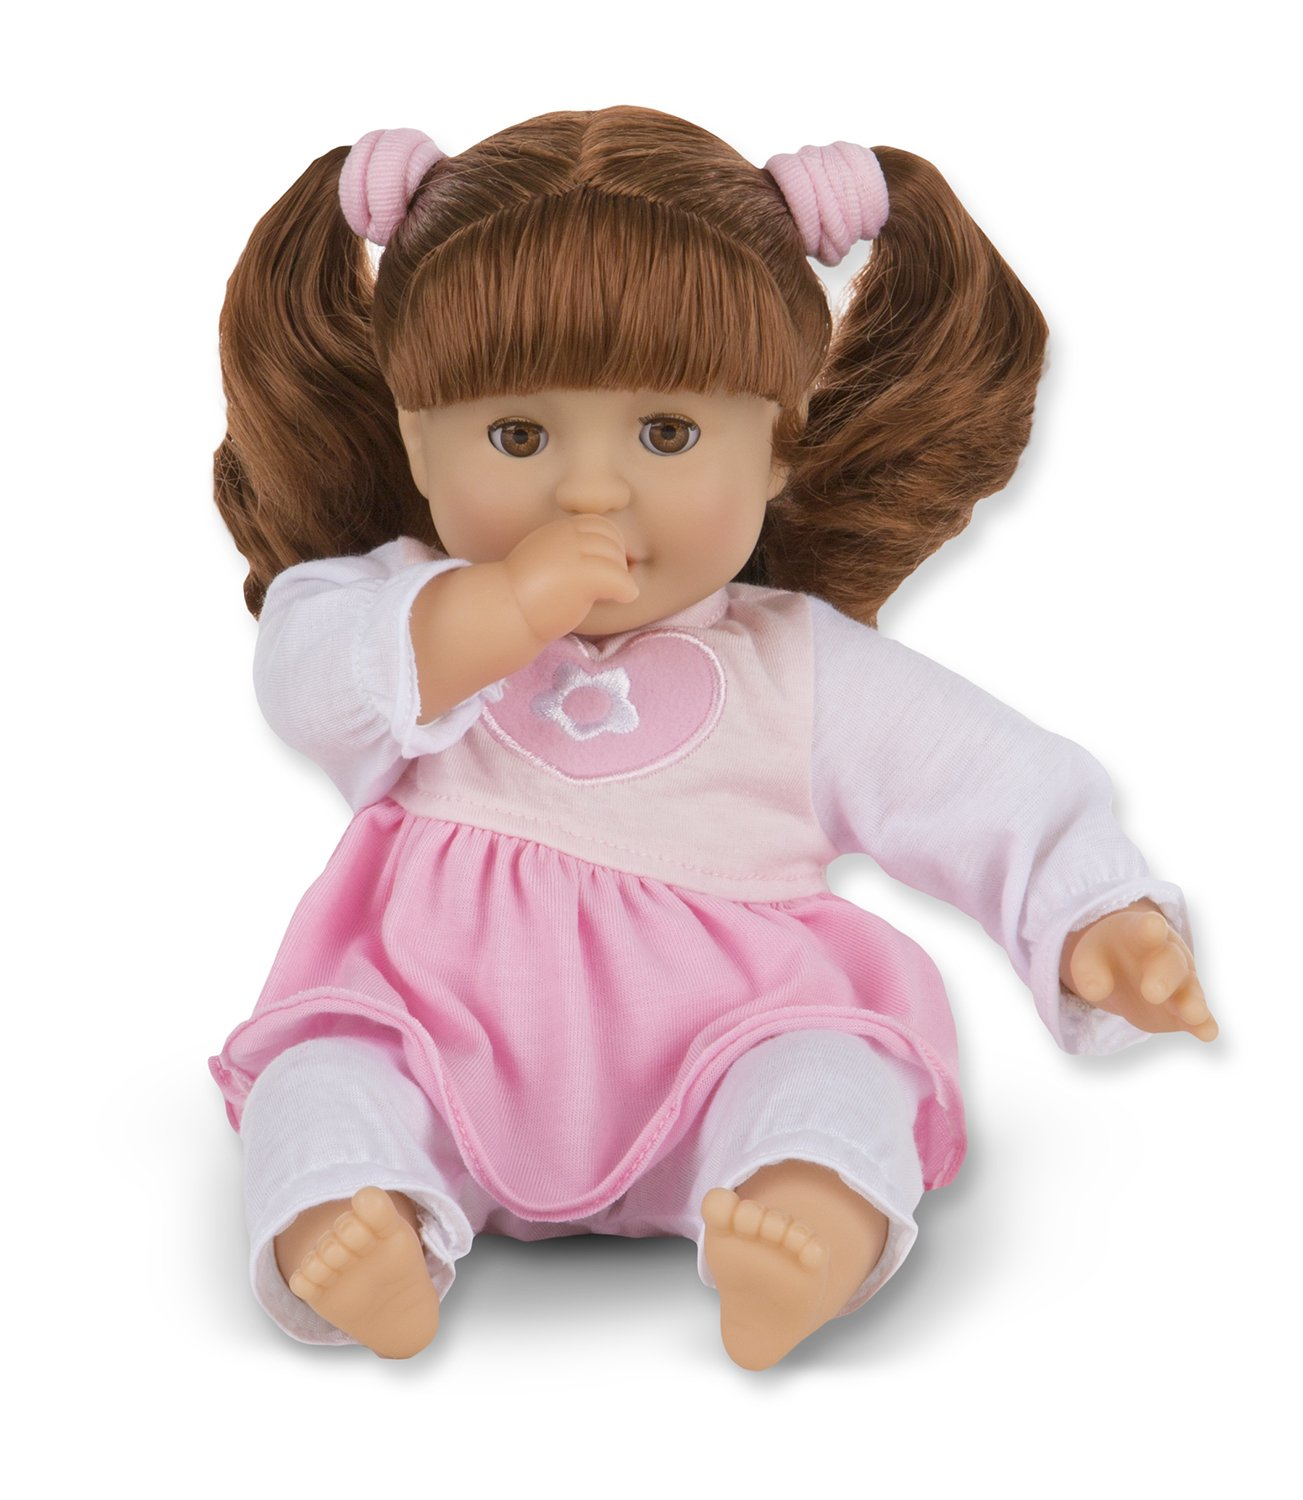 Melissa & Doug standard Mine to Love Brianna 12-Inch Soft Body Baby Doll with Hair and Outfit 4883